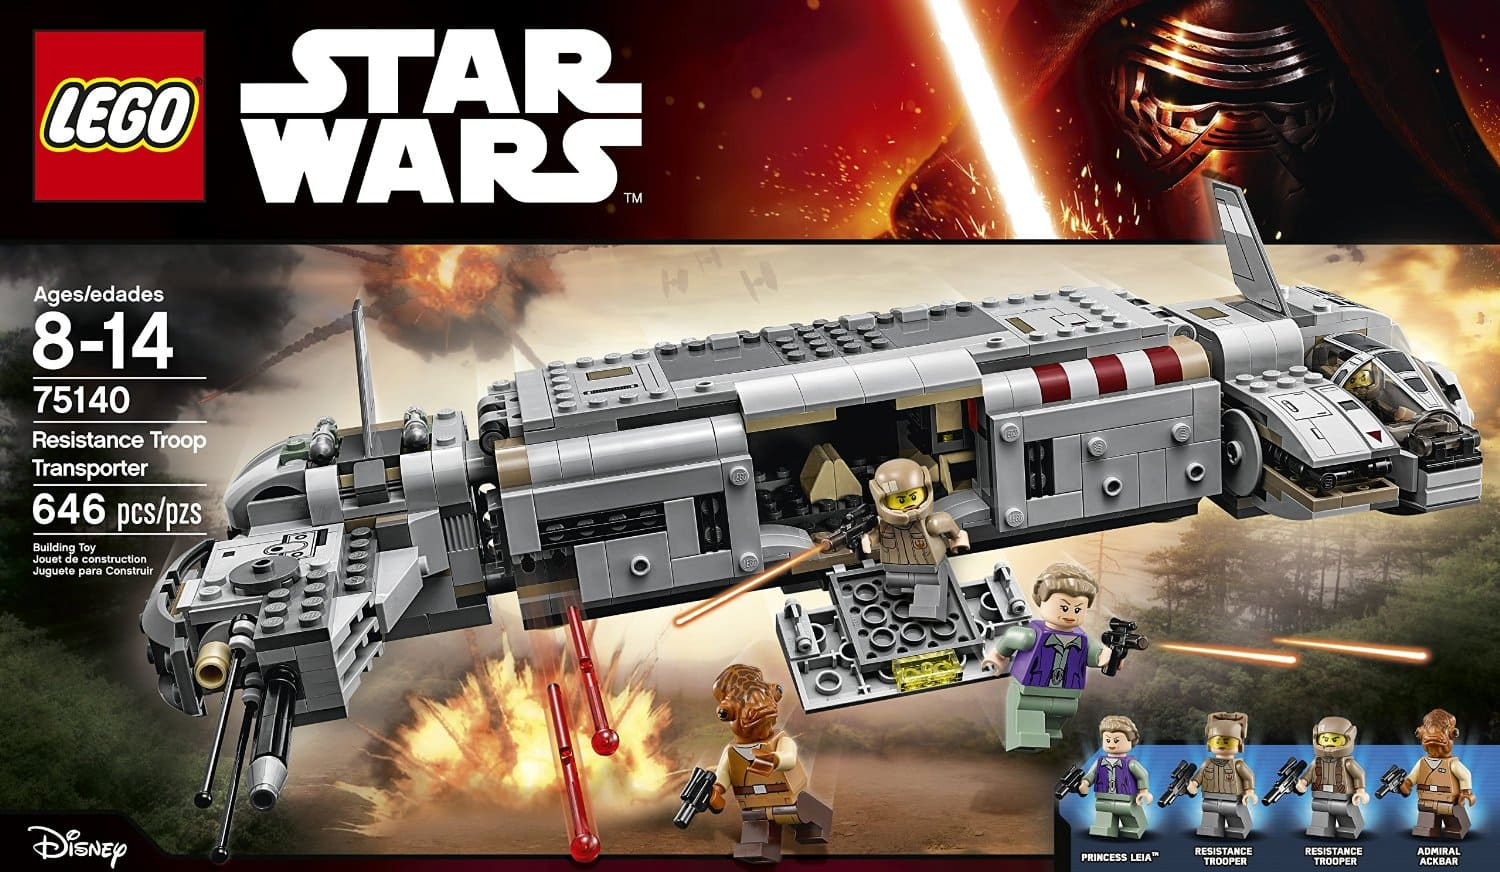 LEGO Star Wars: 646-Piece Resistance Troop Transporter Set $50.99 + Free Shipping